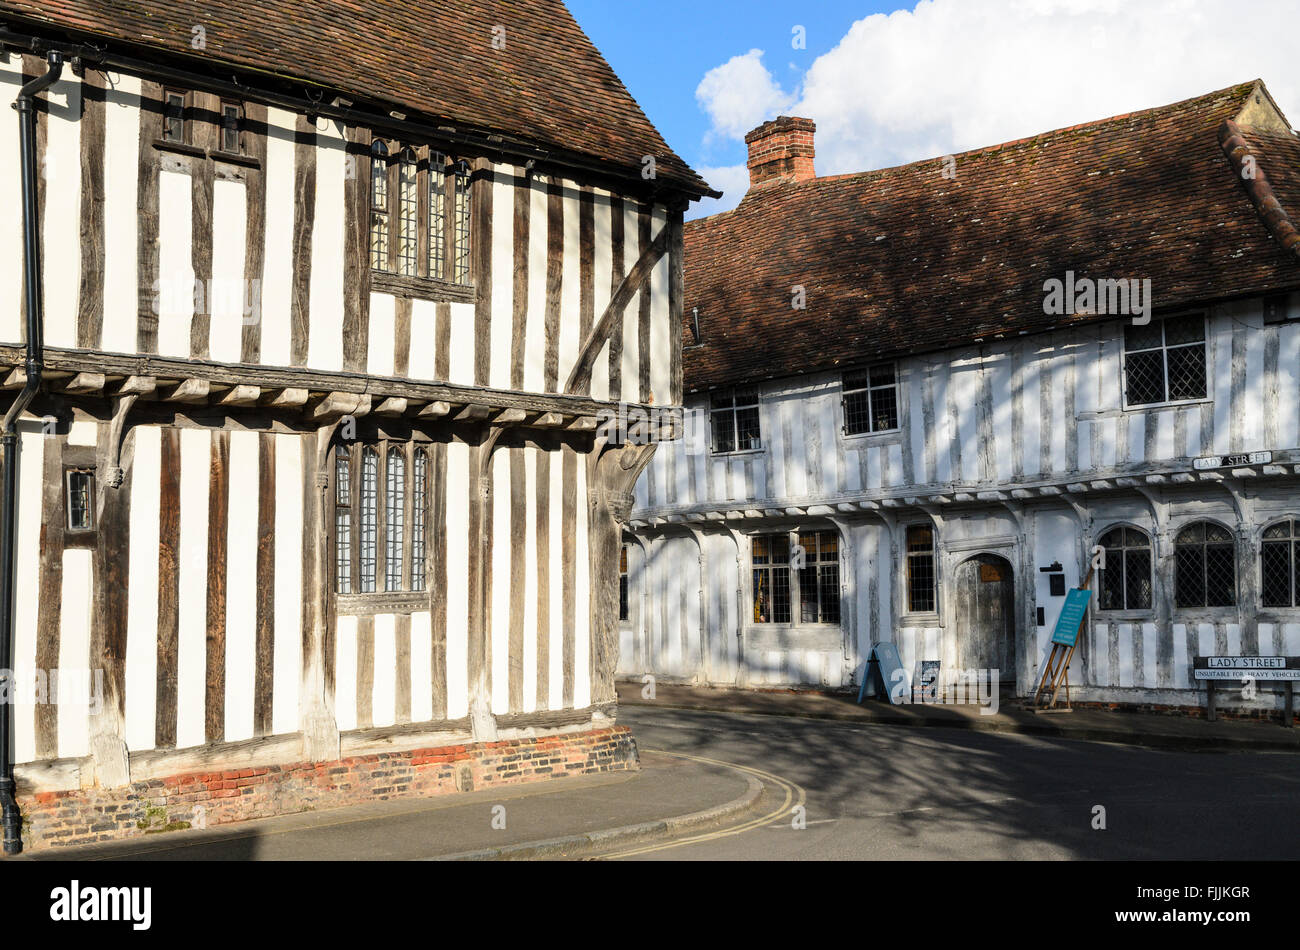 Traditional half-timbered medieval builidings in Lavenham, Suffolk, England, UK.Stock Photo